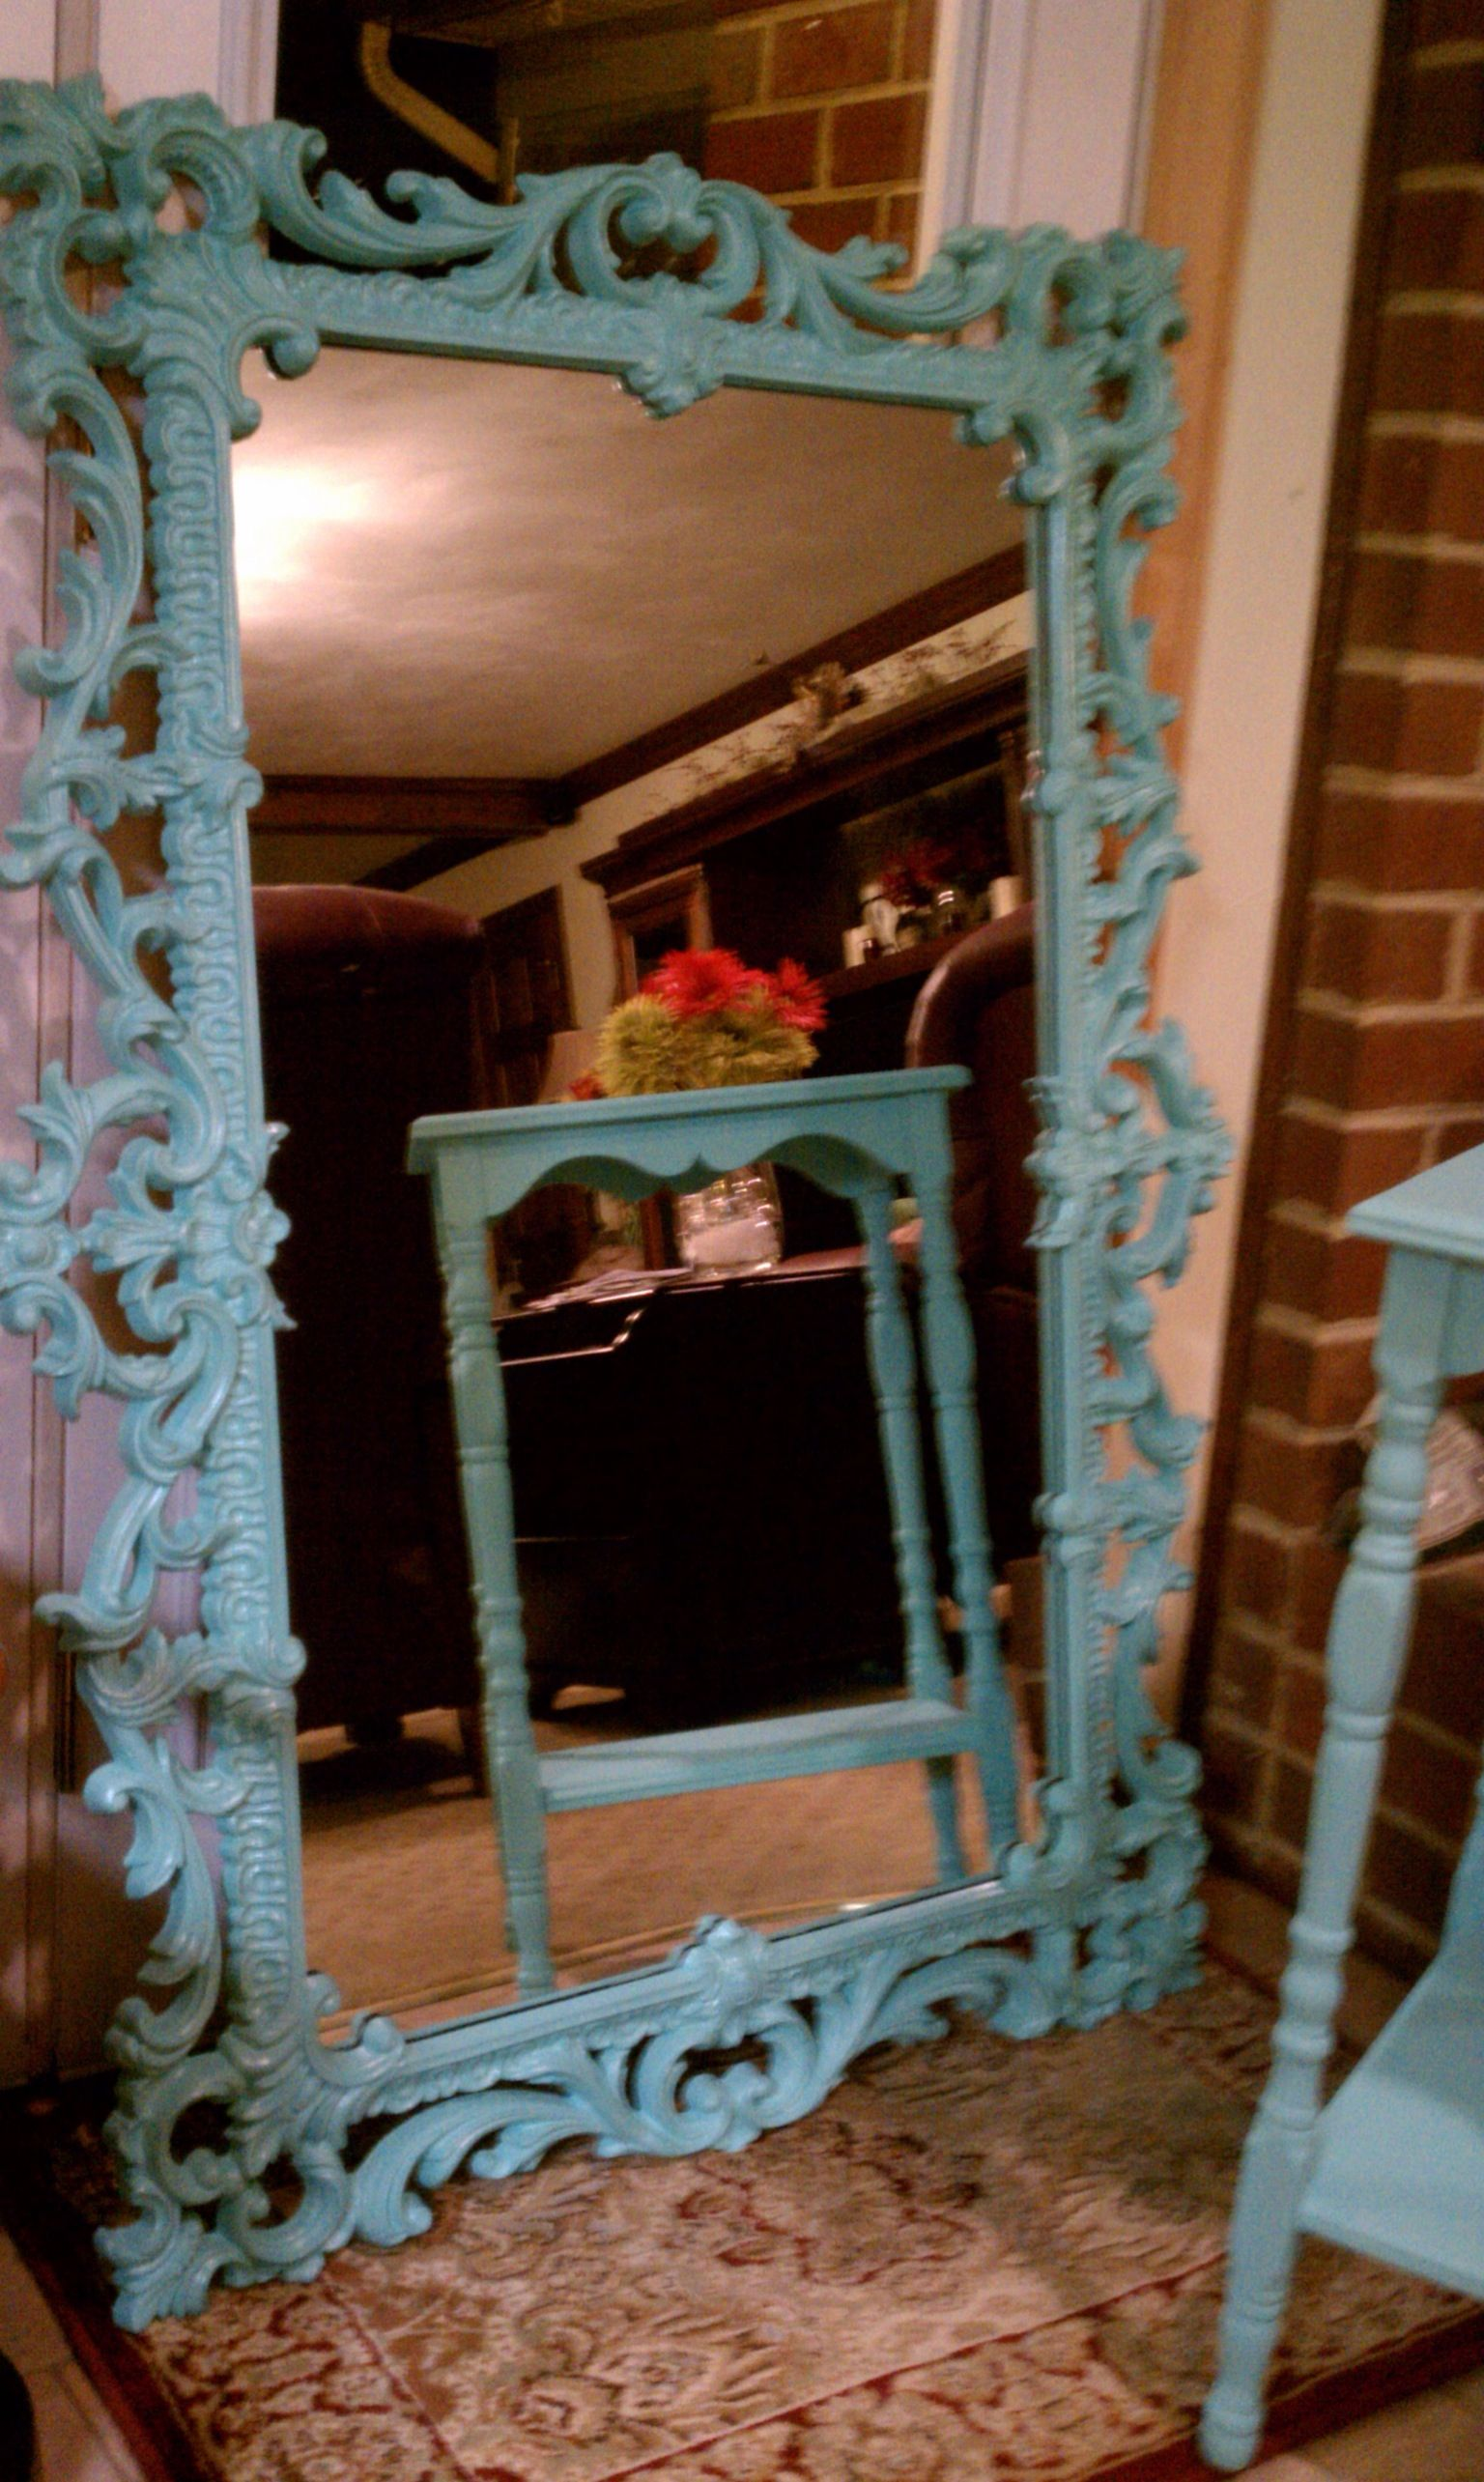 Brianas Painted Mirror Frame And Side Table (Tiffany Blue) Original